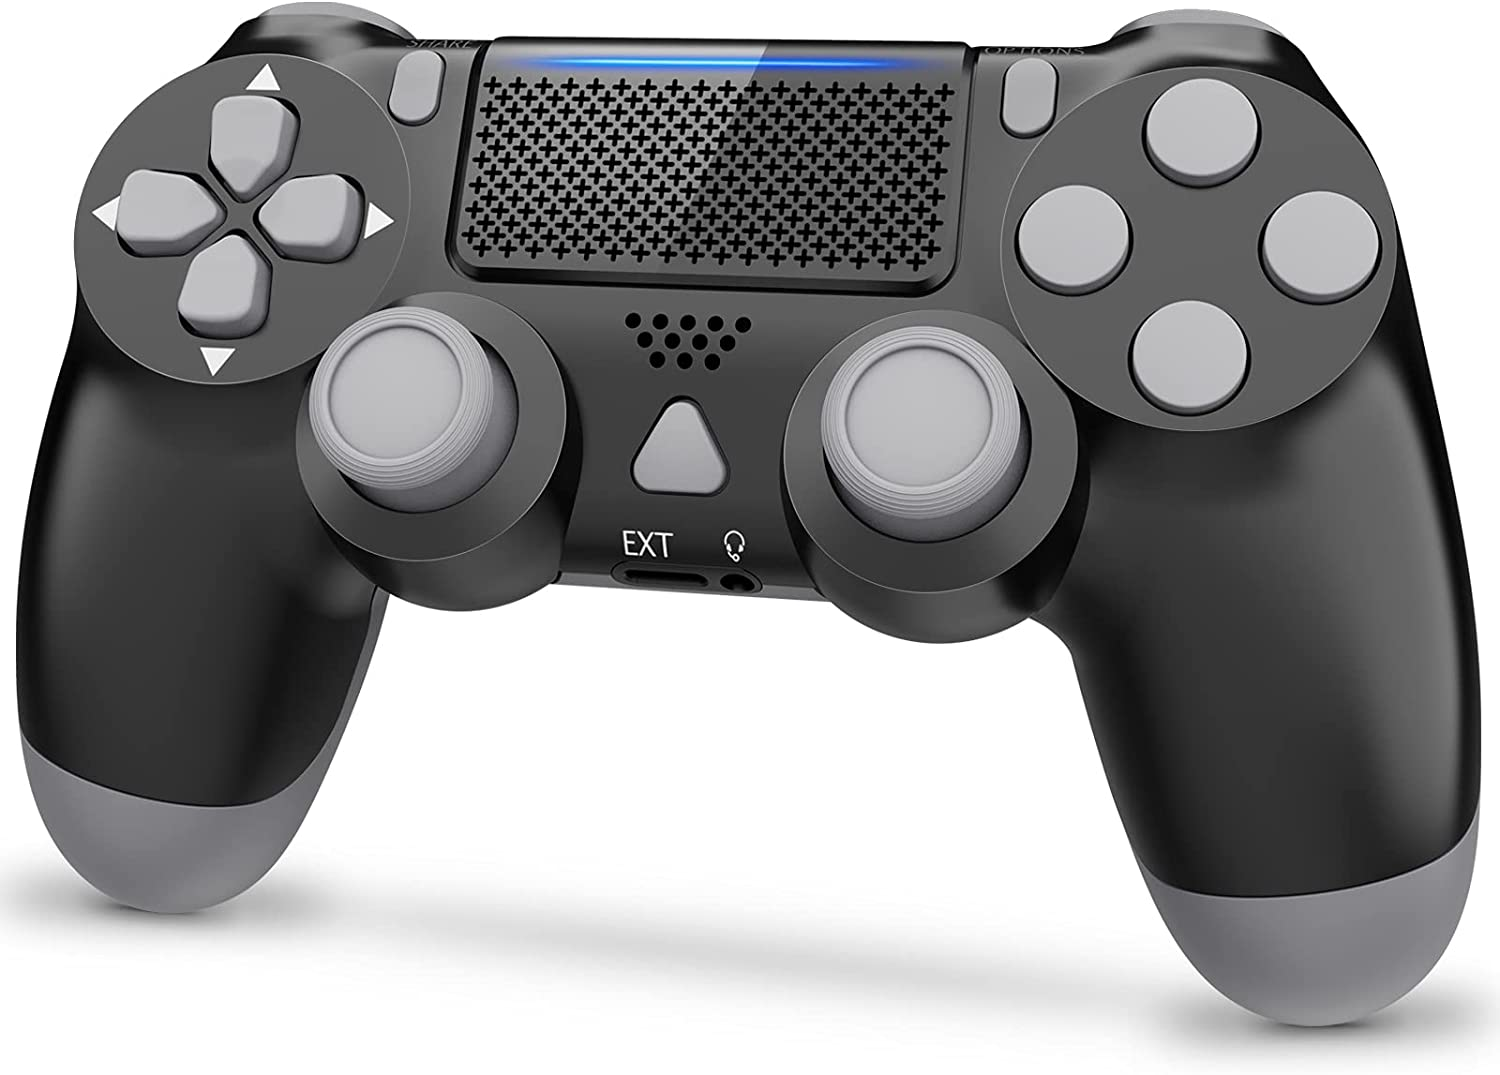 Y Team Wireless Controller for PS4, PStation 4 Gamepad Remote Controller with Double Vibration/Audio Function/Touch Pad, Compatible with PS4/Slim/Pro(Black)